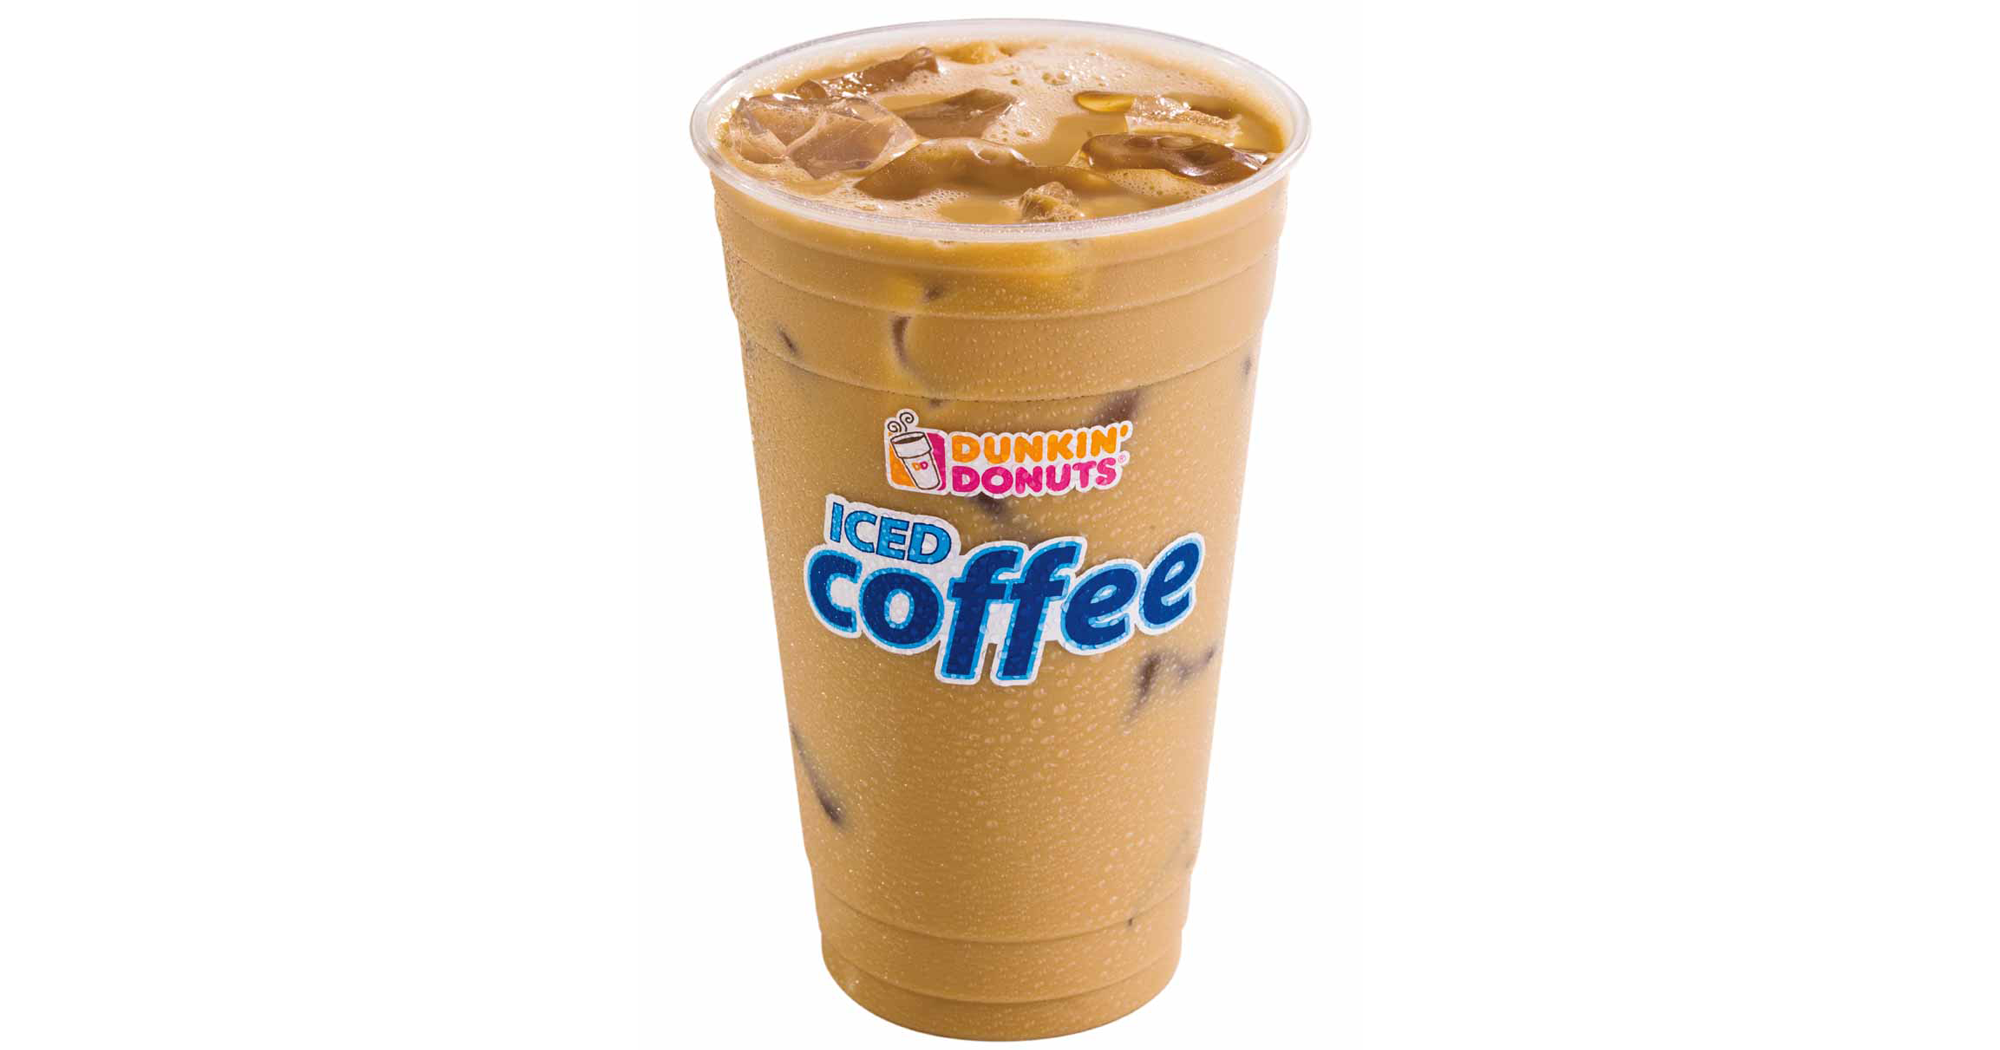 Dunkin Donuts Iced Coffee - Cold Brew Test